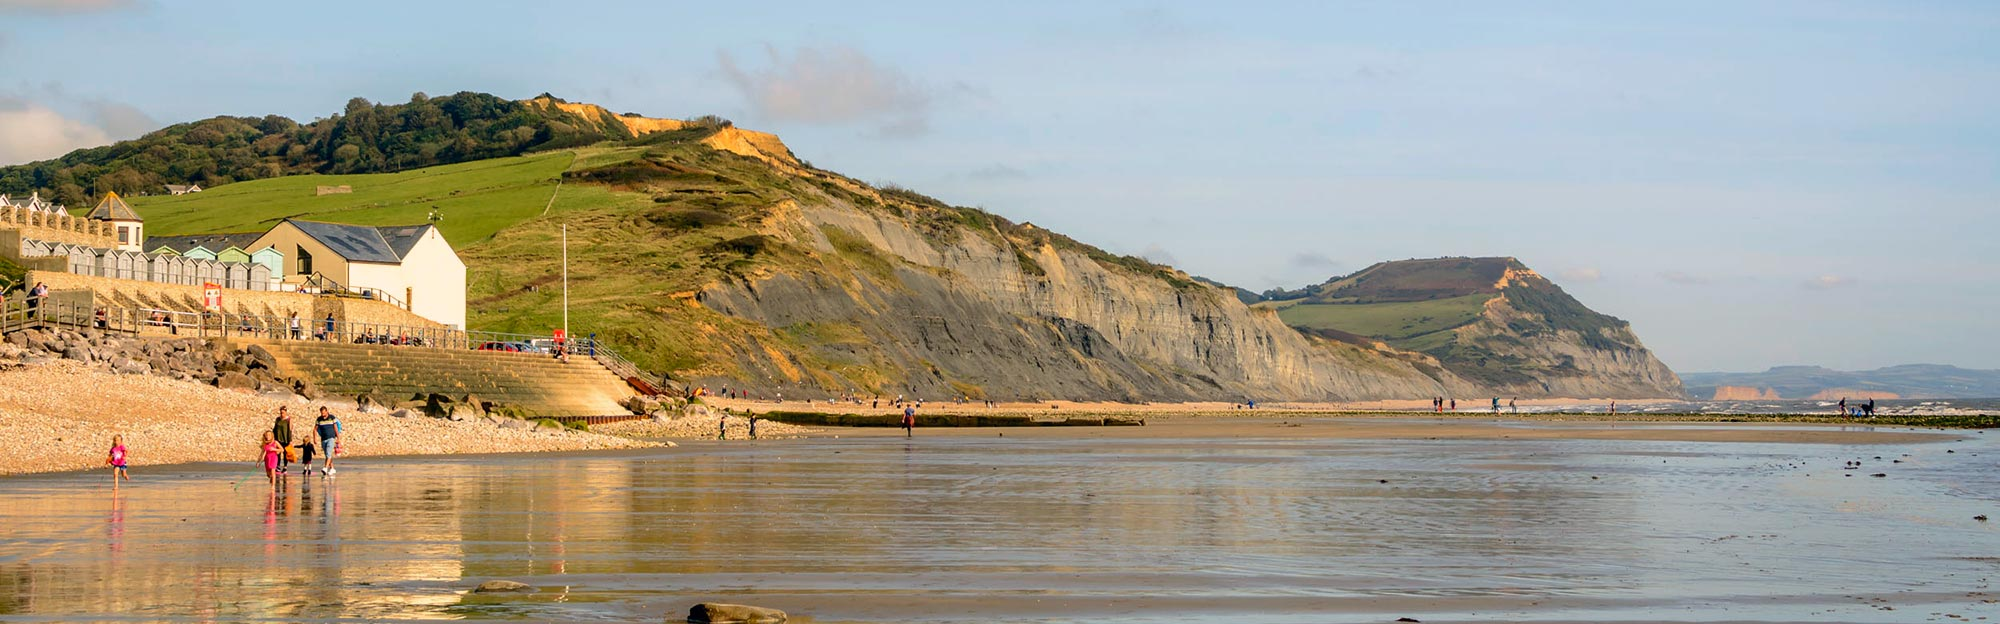 East Beach Charmouth with Heritage Coast Centre in foreground